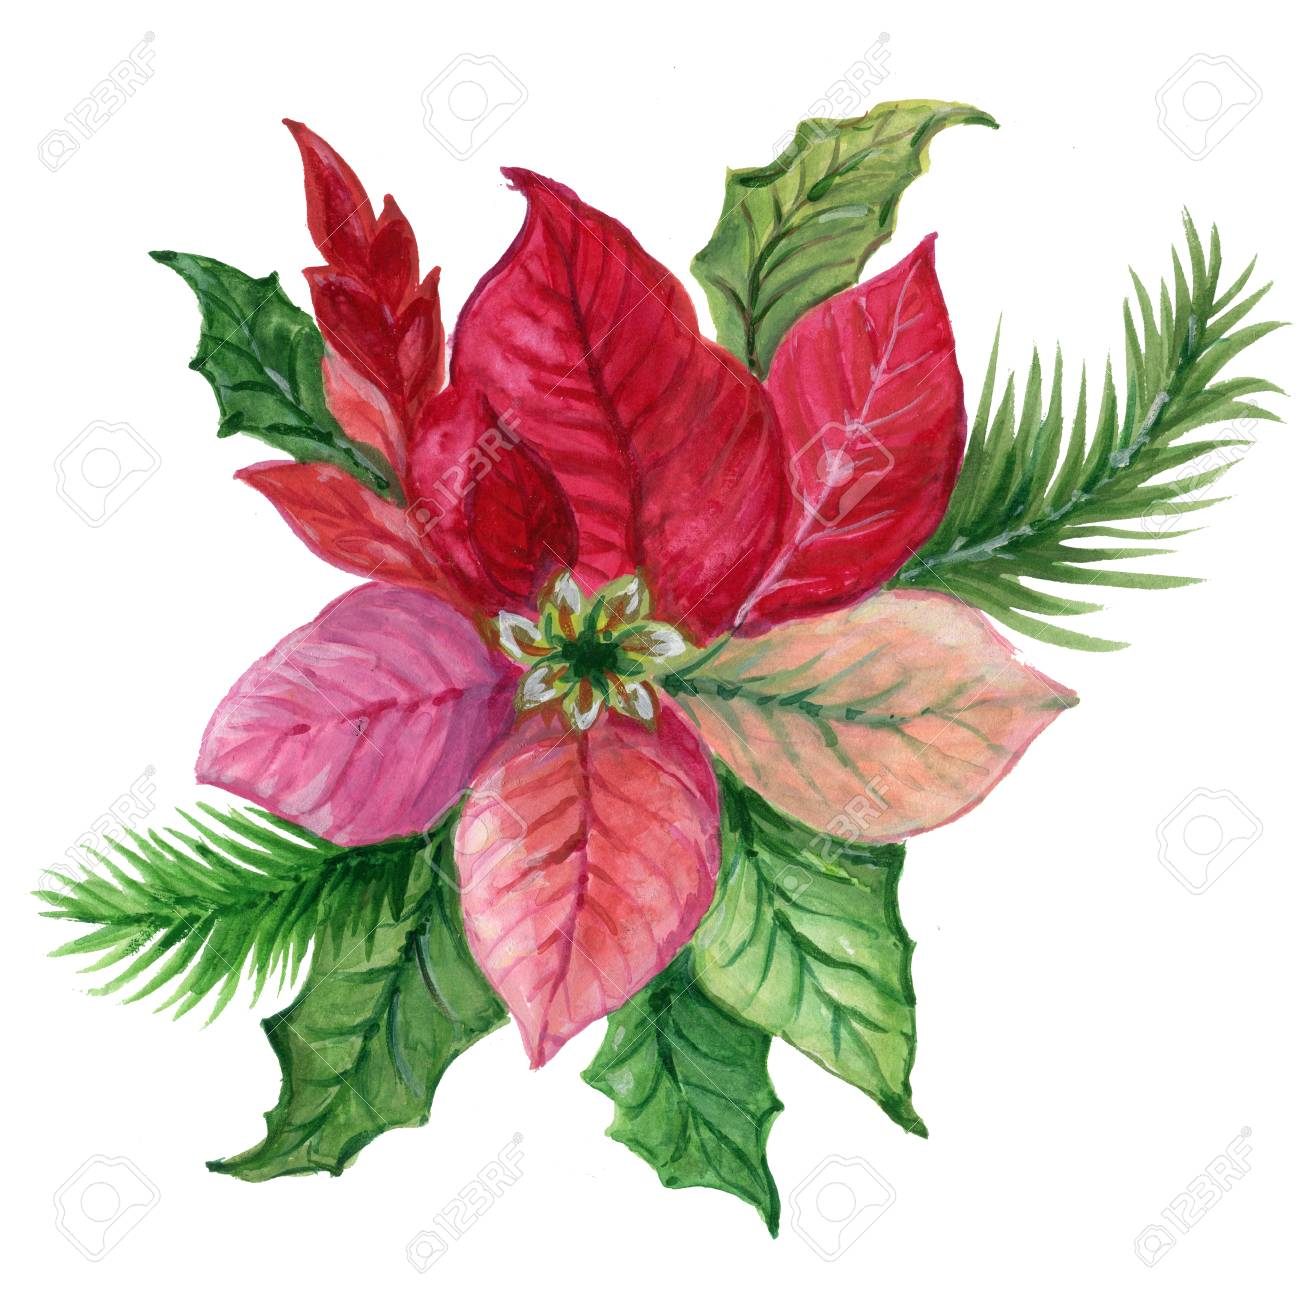 Christmas Plant Poinsettia Watercolor Gouache Colorful Pink Green